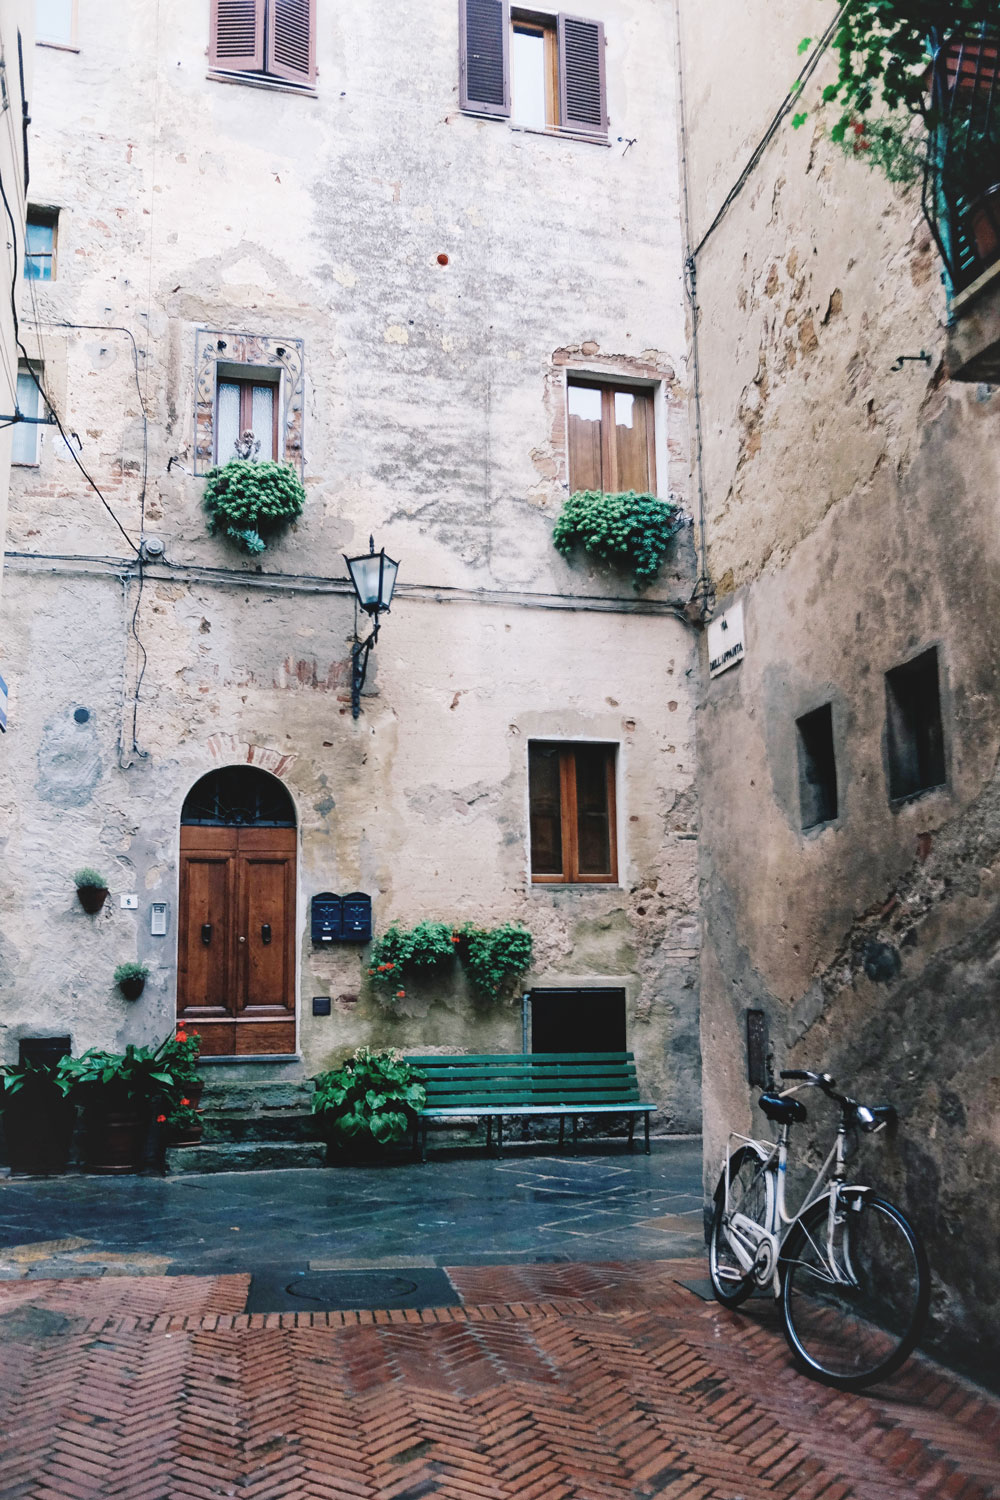 Tuscany travel guide, weekend guide to Tuscany, what to do in Tuscany, Siena Italy travel guide, Montepulciano guide, Pienza travel tips, Italy travel guide by To Vogue or Bust